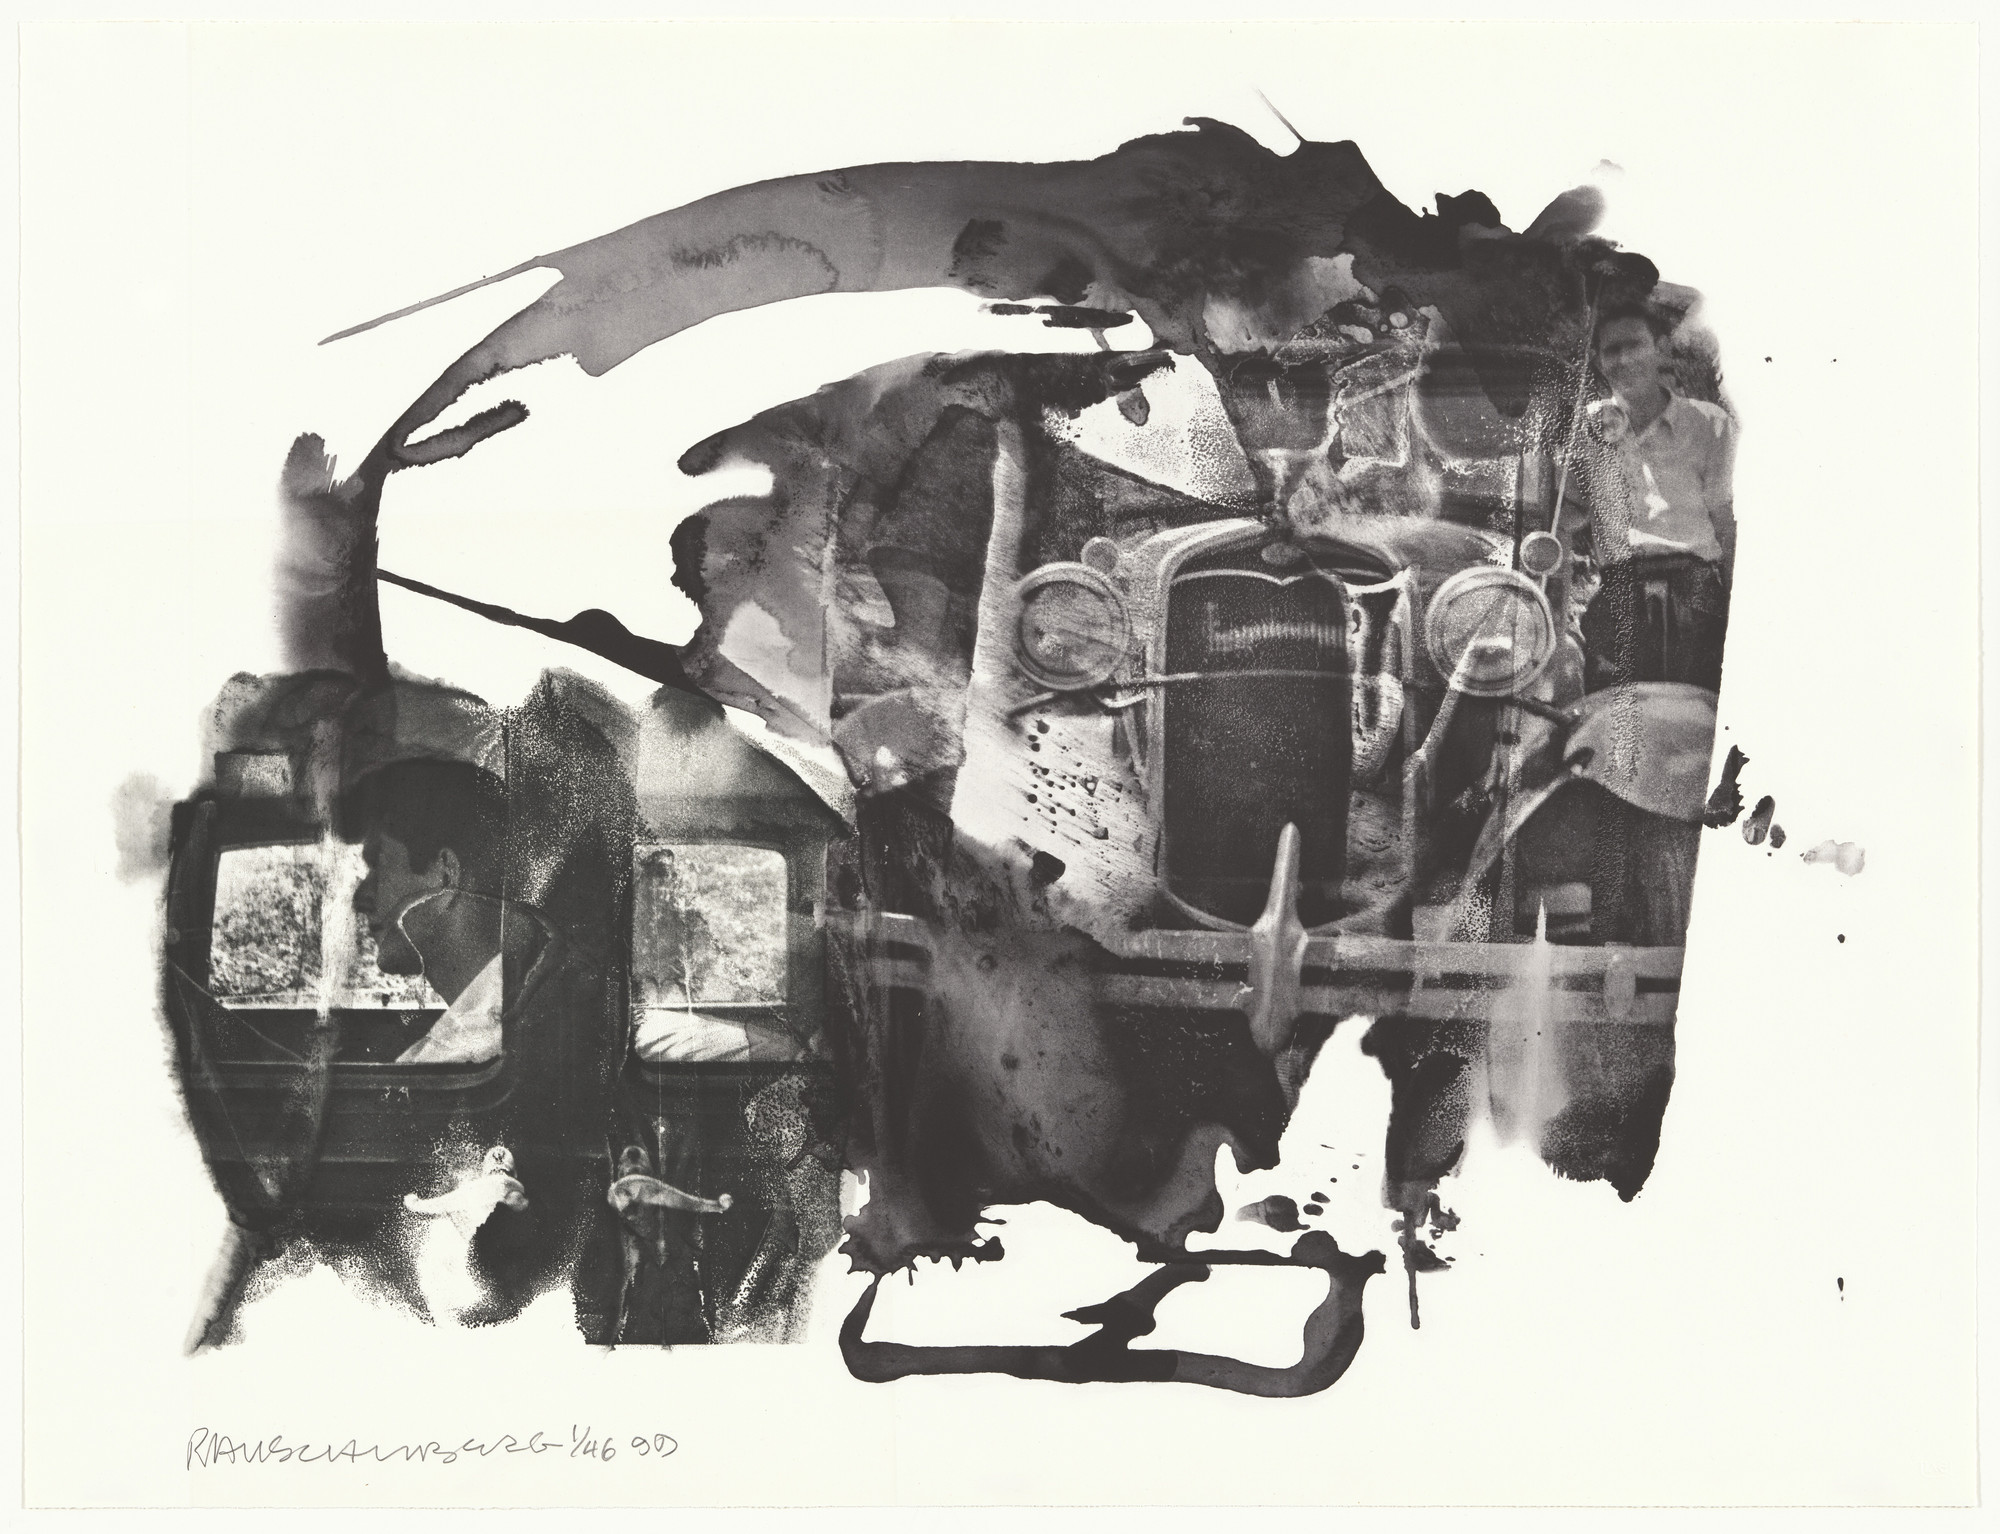 Robert Rauschenberg. John from Ruminations. 1999